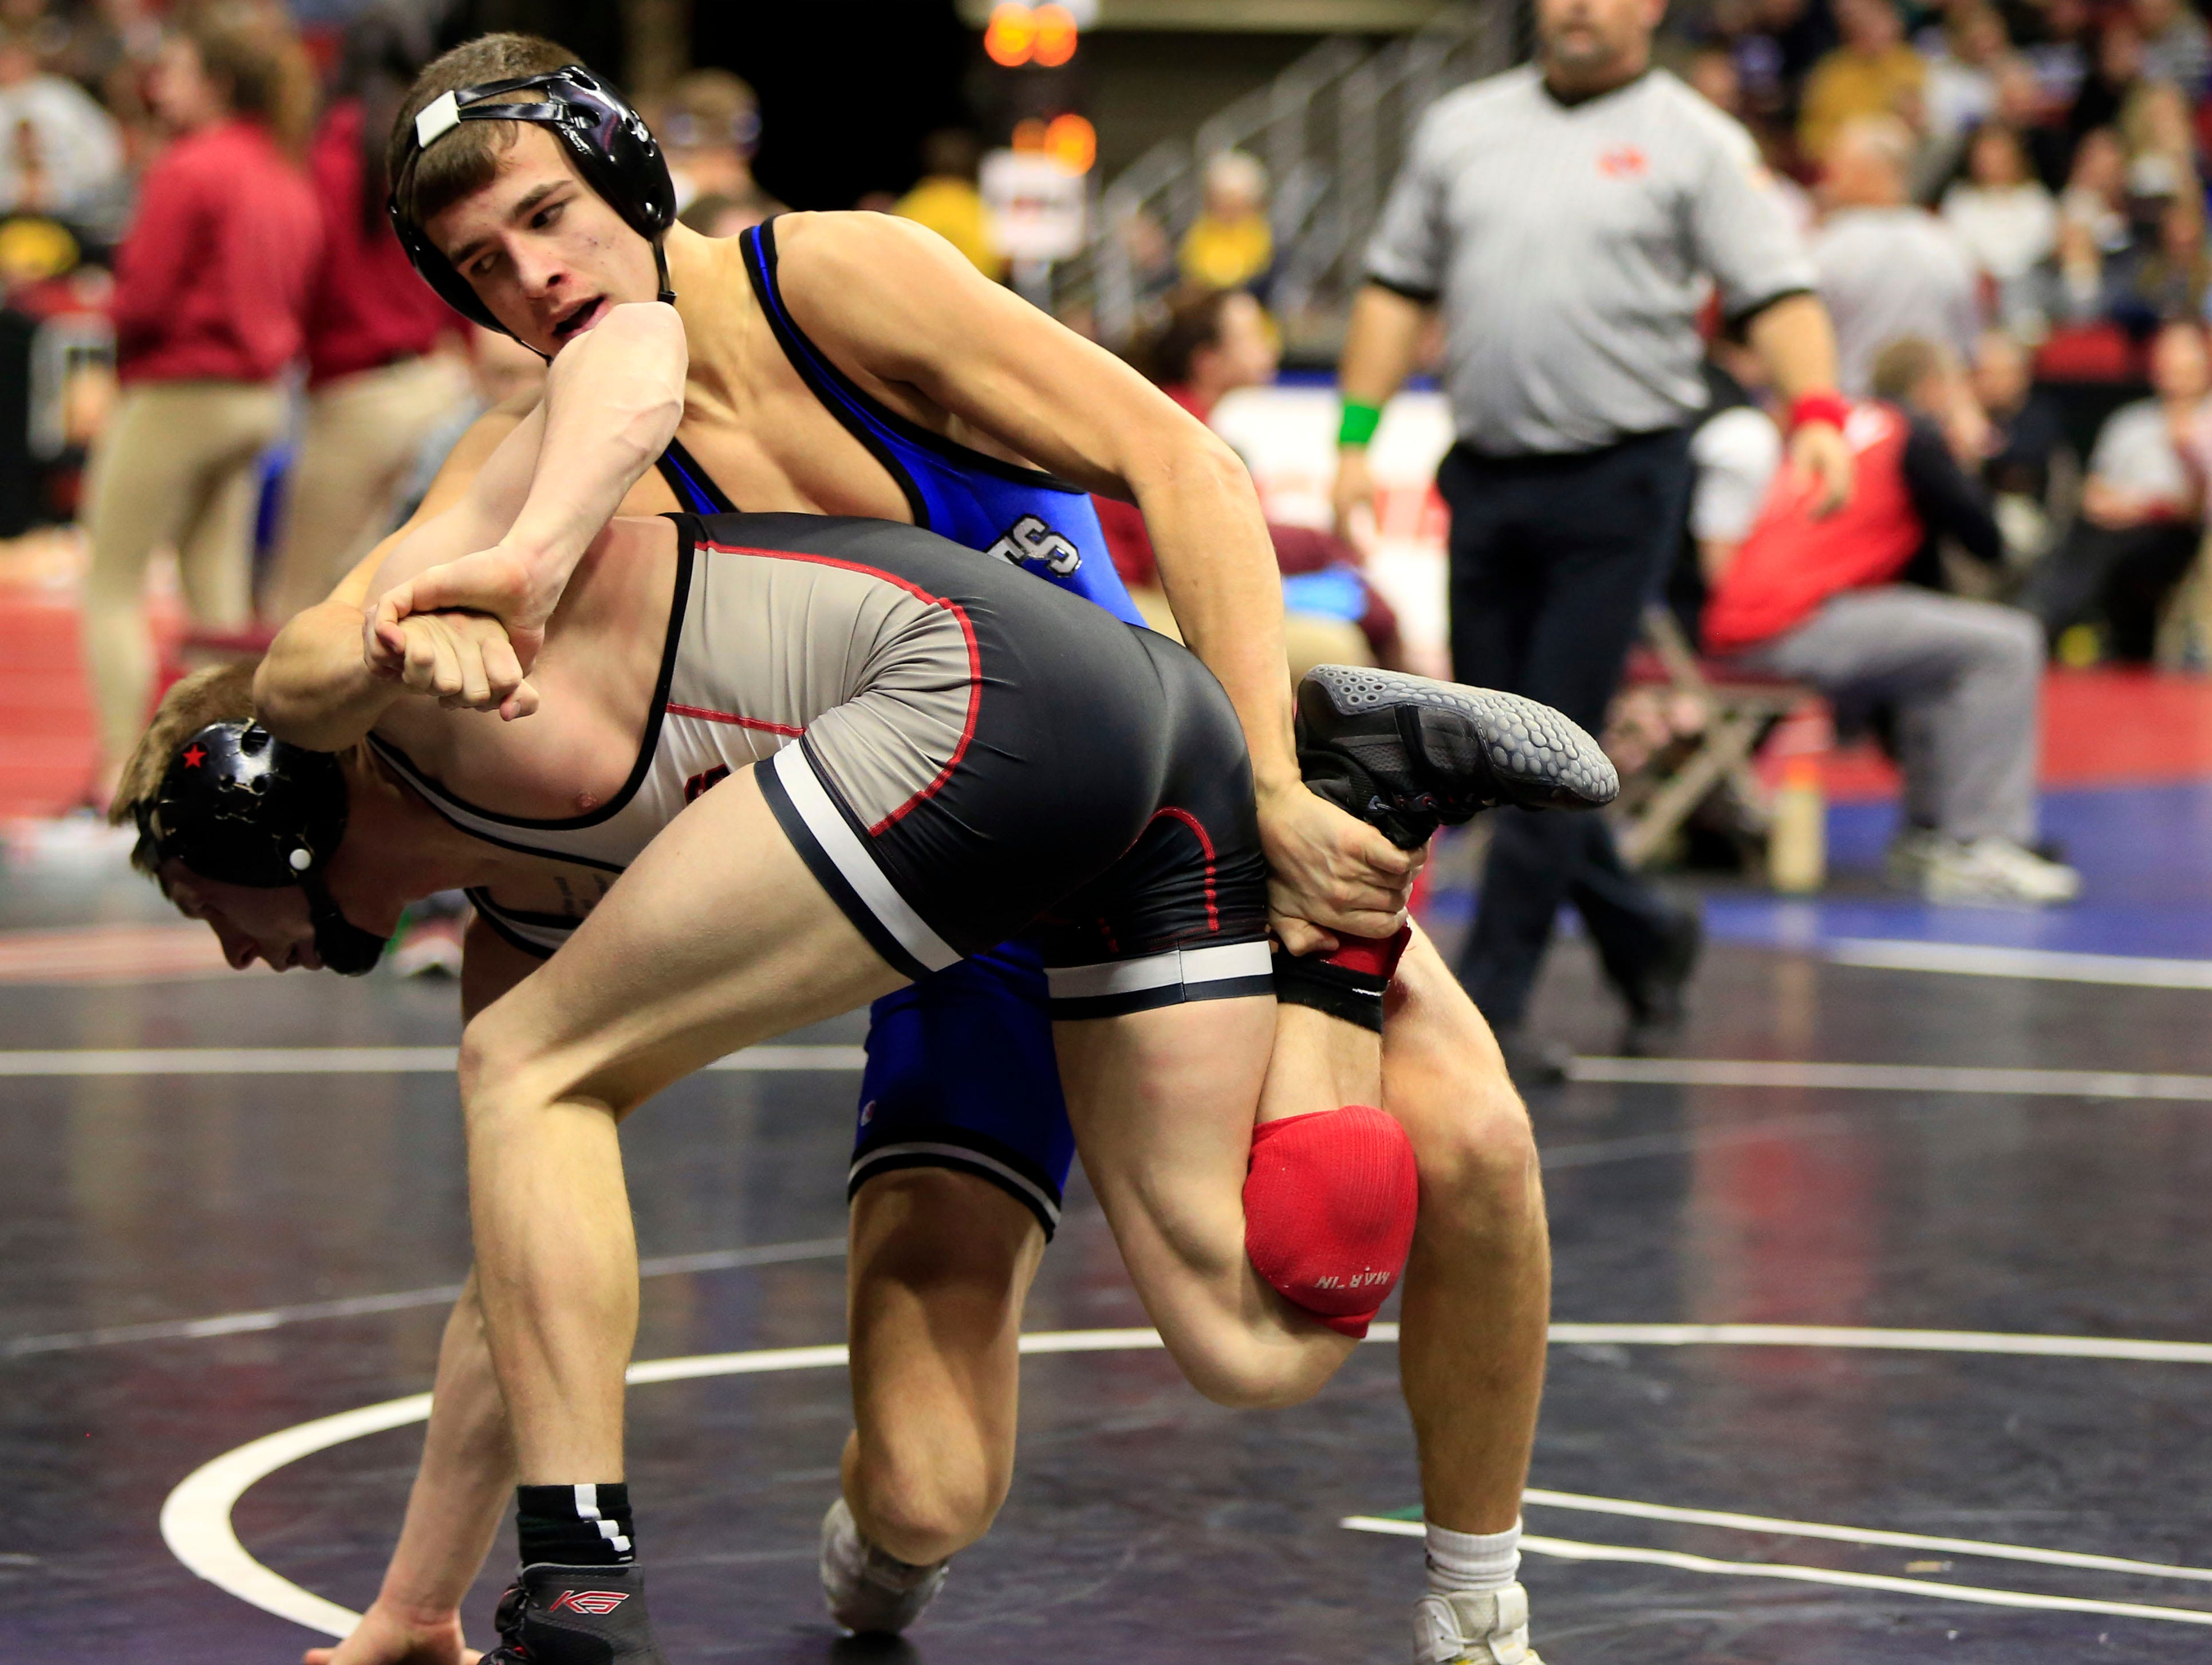 Will Esmoil of West Liberty defeats Chase Luensman of Monticello during a 145 Lb 2A quarterfinal match at the state wrestling tournament Friday, Feb. 15, 2019.